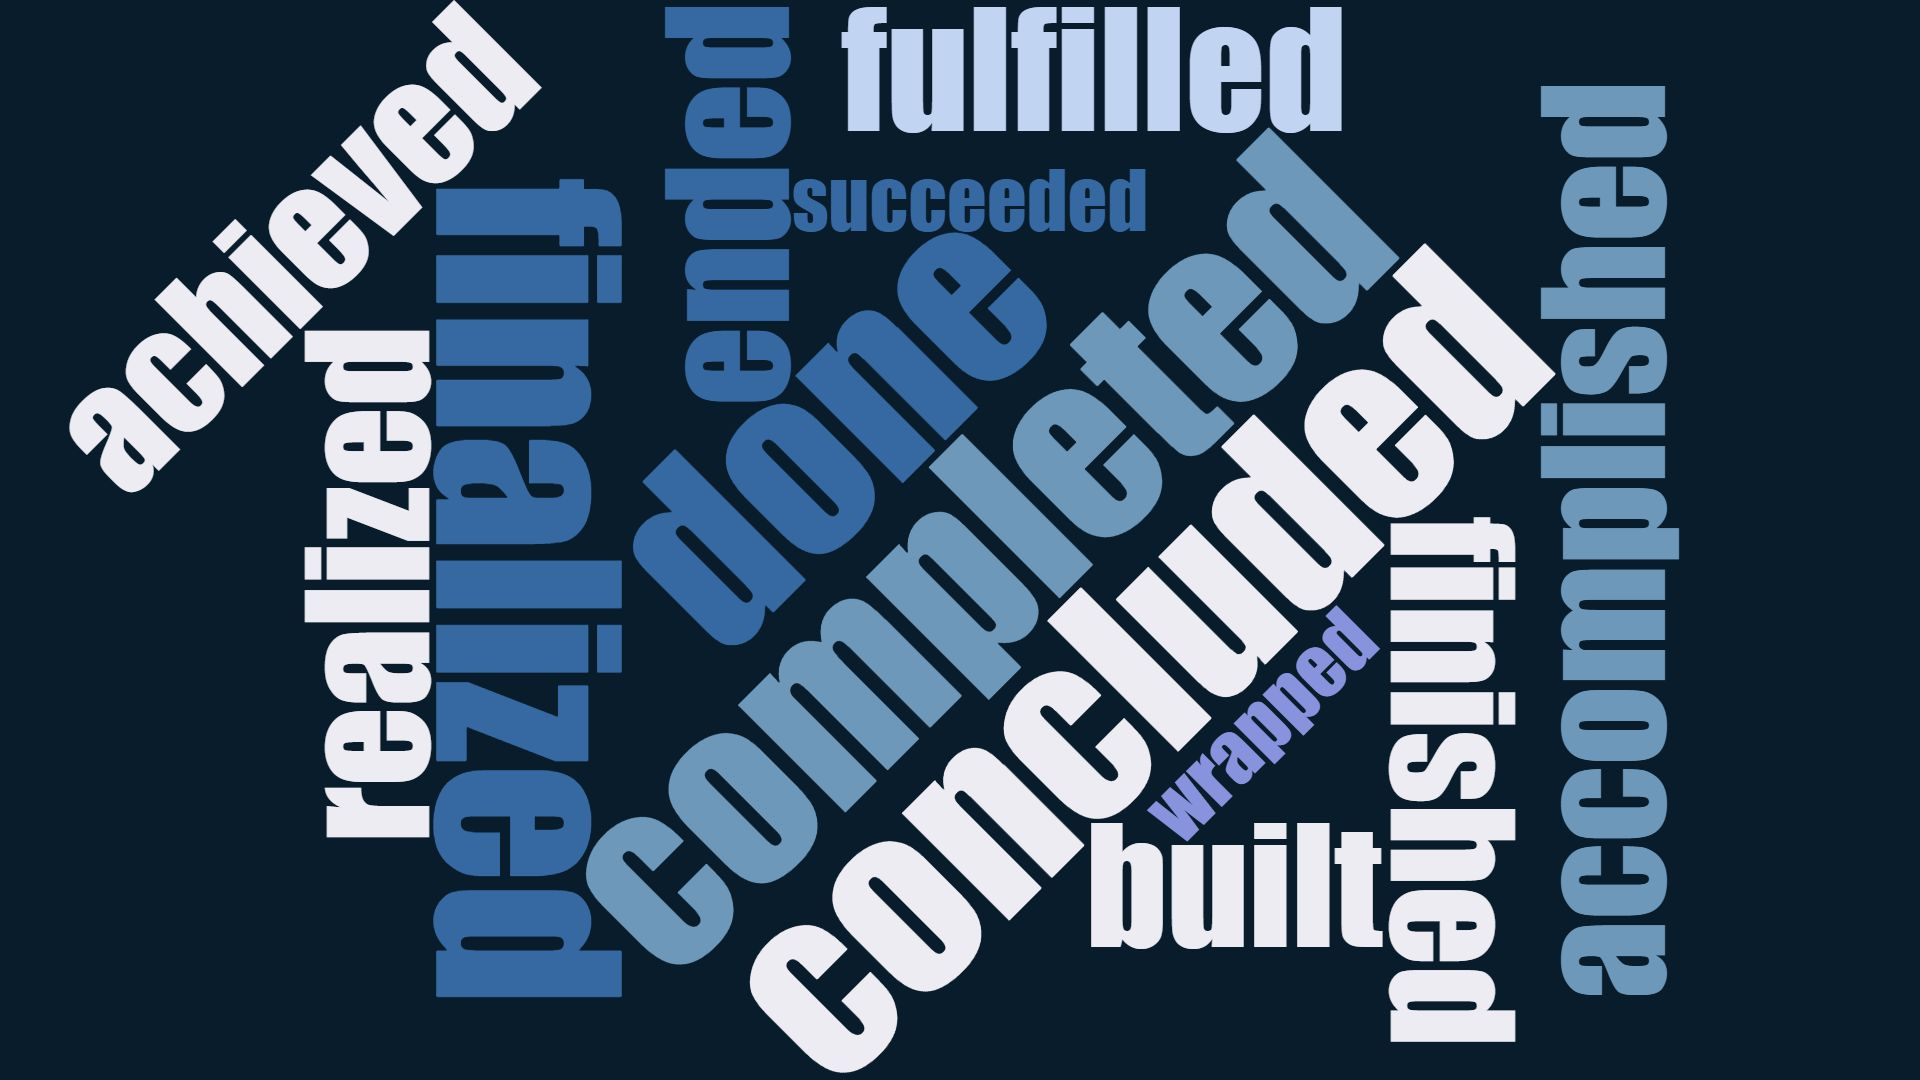 WordCloud - Impact Done (1).jpg